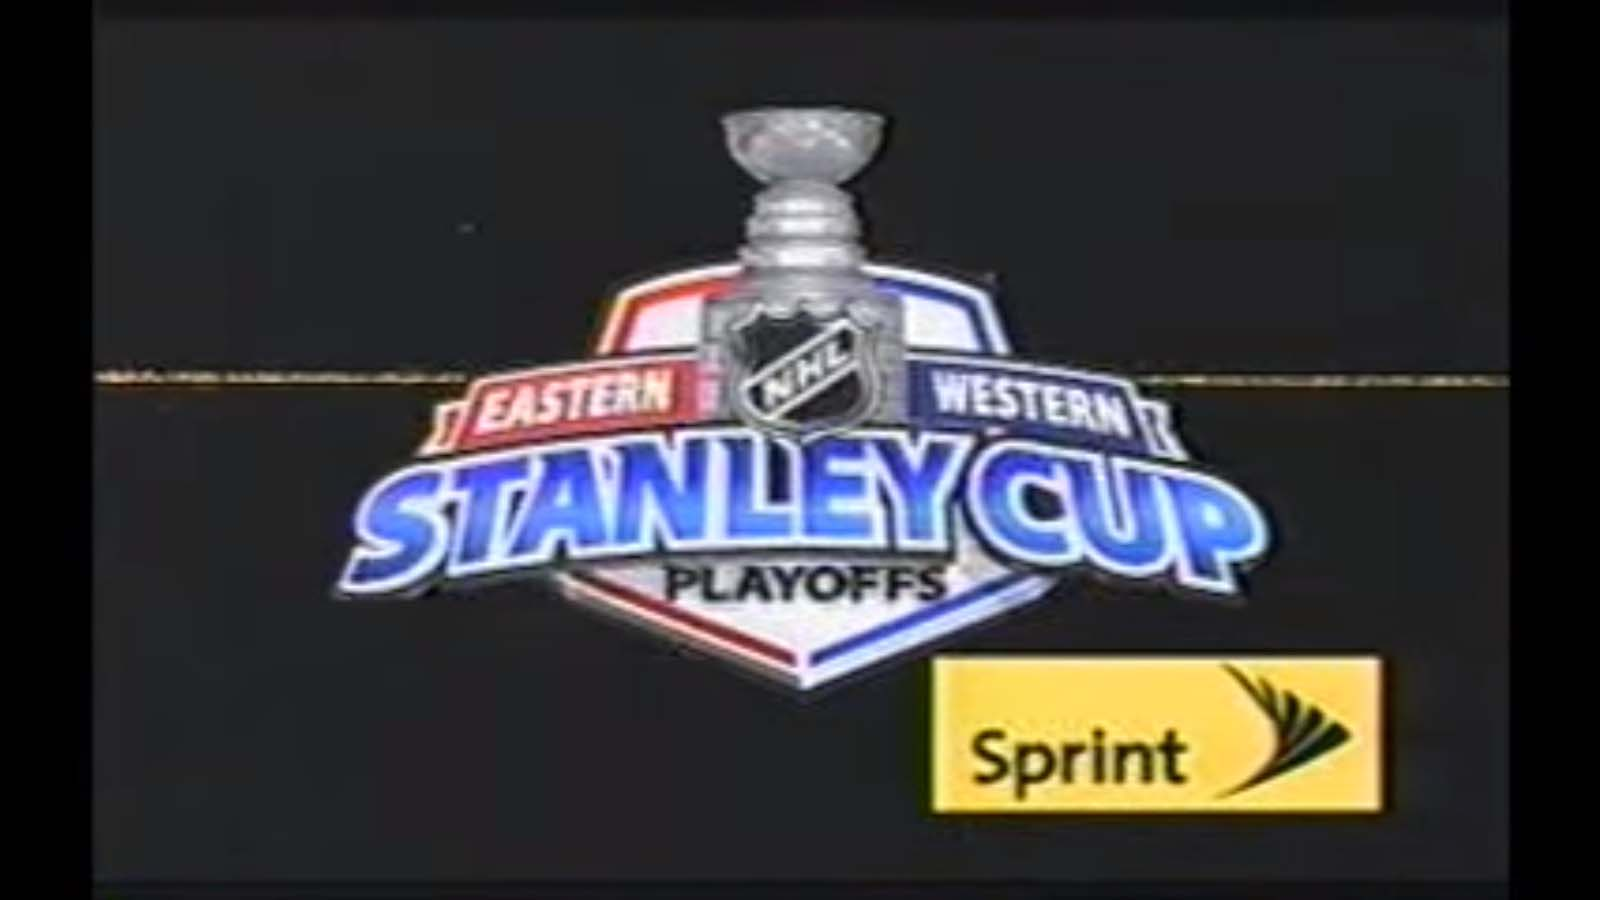 NBC Sports' NHL On NBC, Stanley Cup Playoffs - Game 1 - Eastern Conference Quarterfinals - New York Rangers Vs. New Jersey Devils Video Open From April 22, 2006